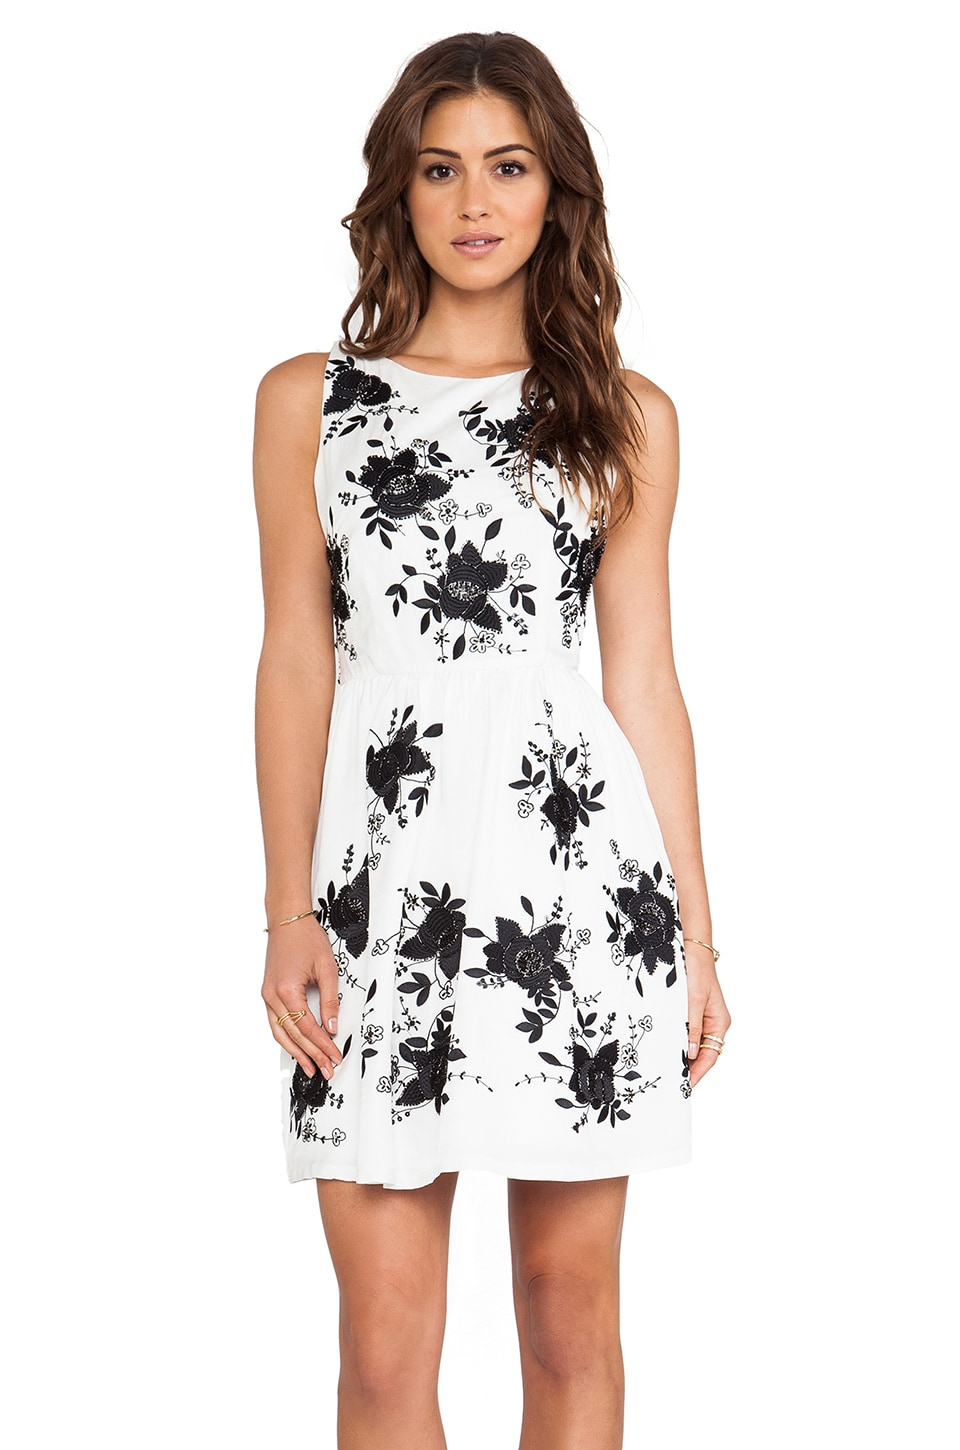 Alice + Olivia Lillyanne Embellished Pouf Dress in Off White & Black